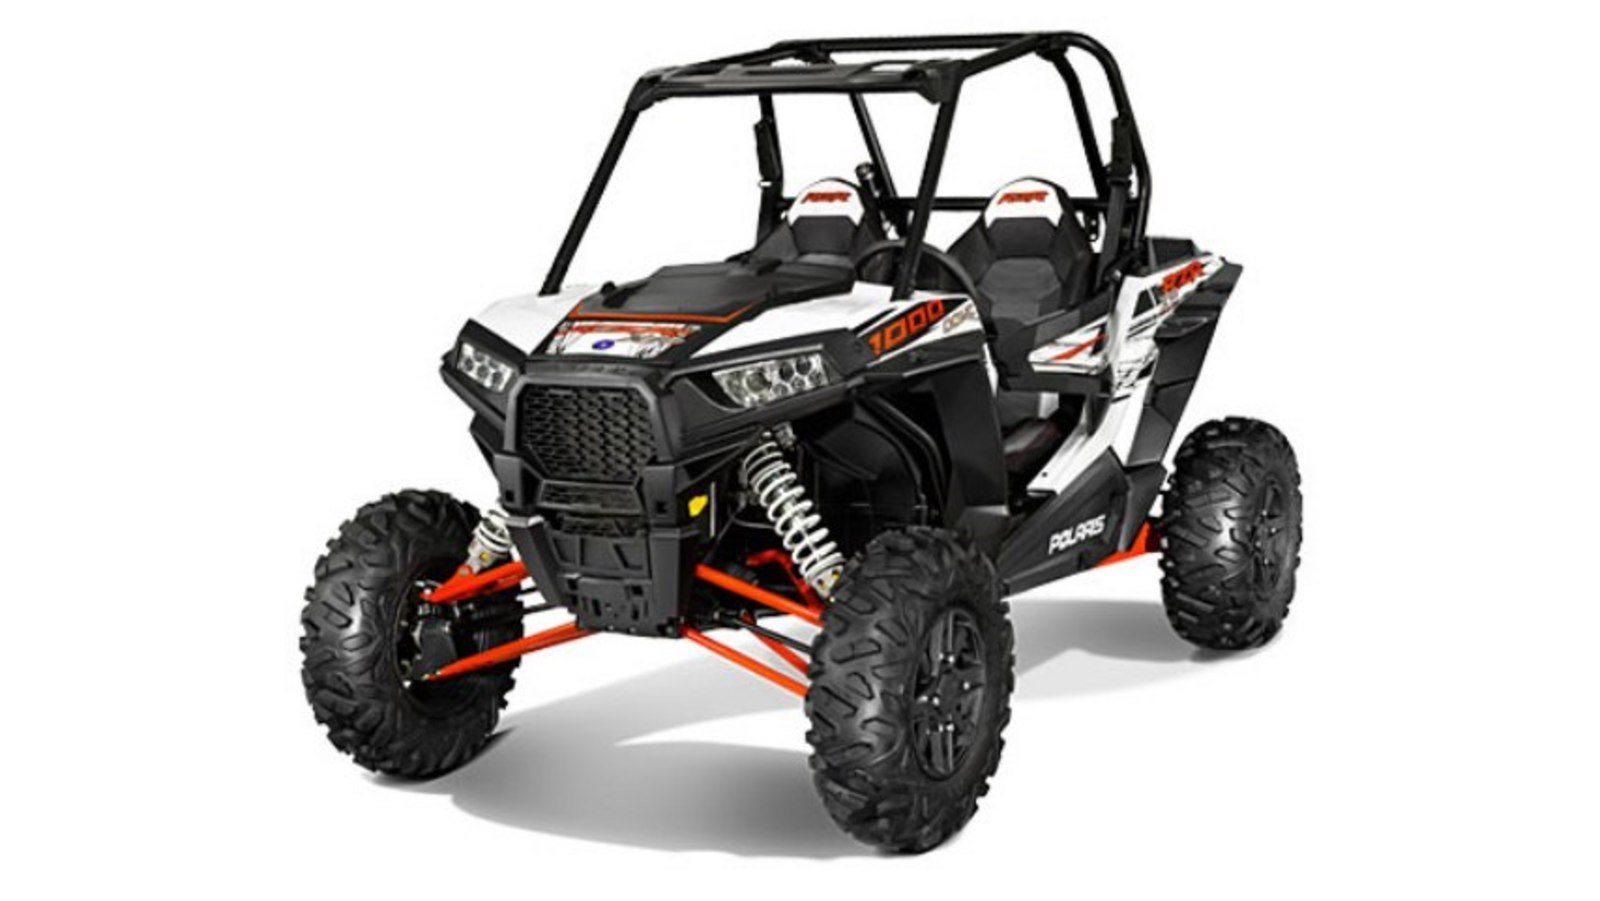 2014 polaris rzr xp 1000 review top speed. Black Bedroom Furniture Sets. Home Design Ideas